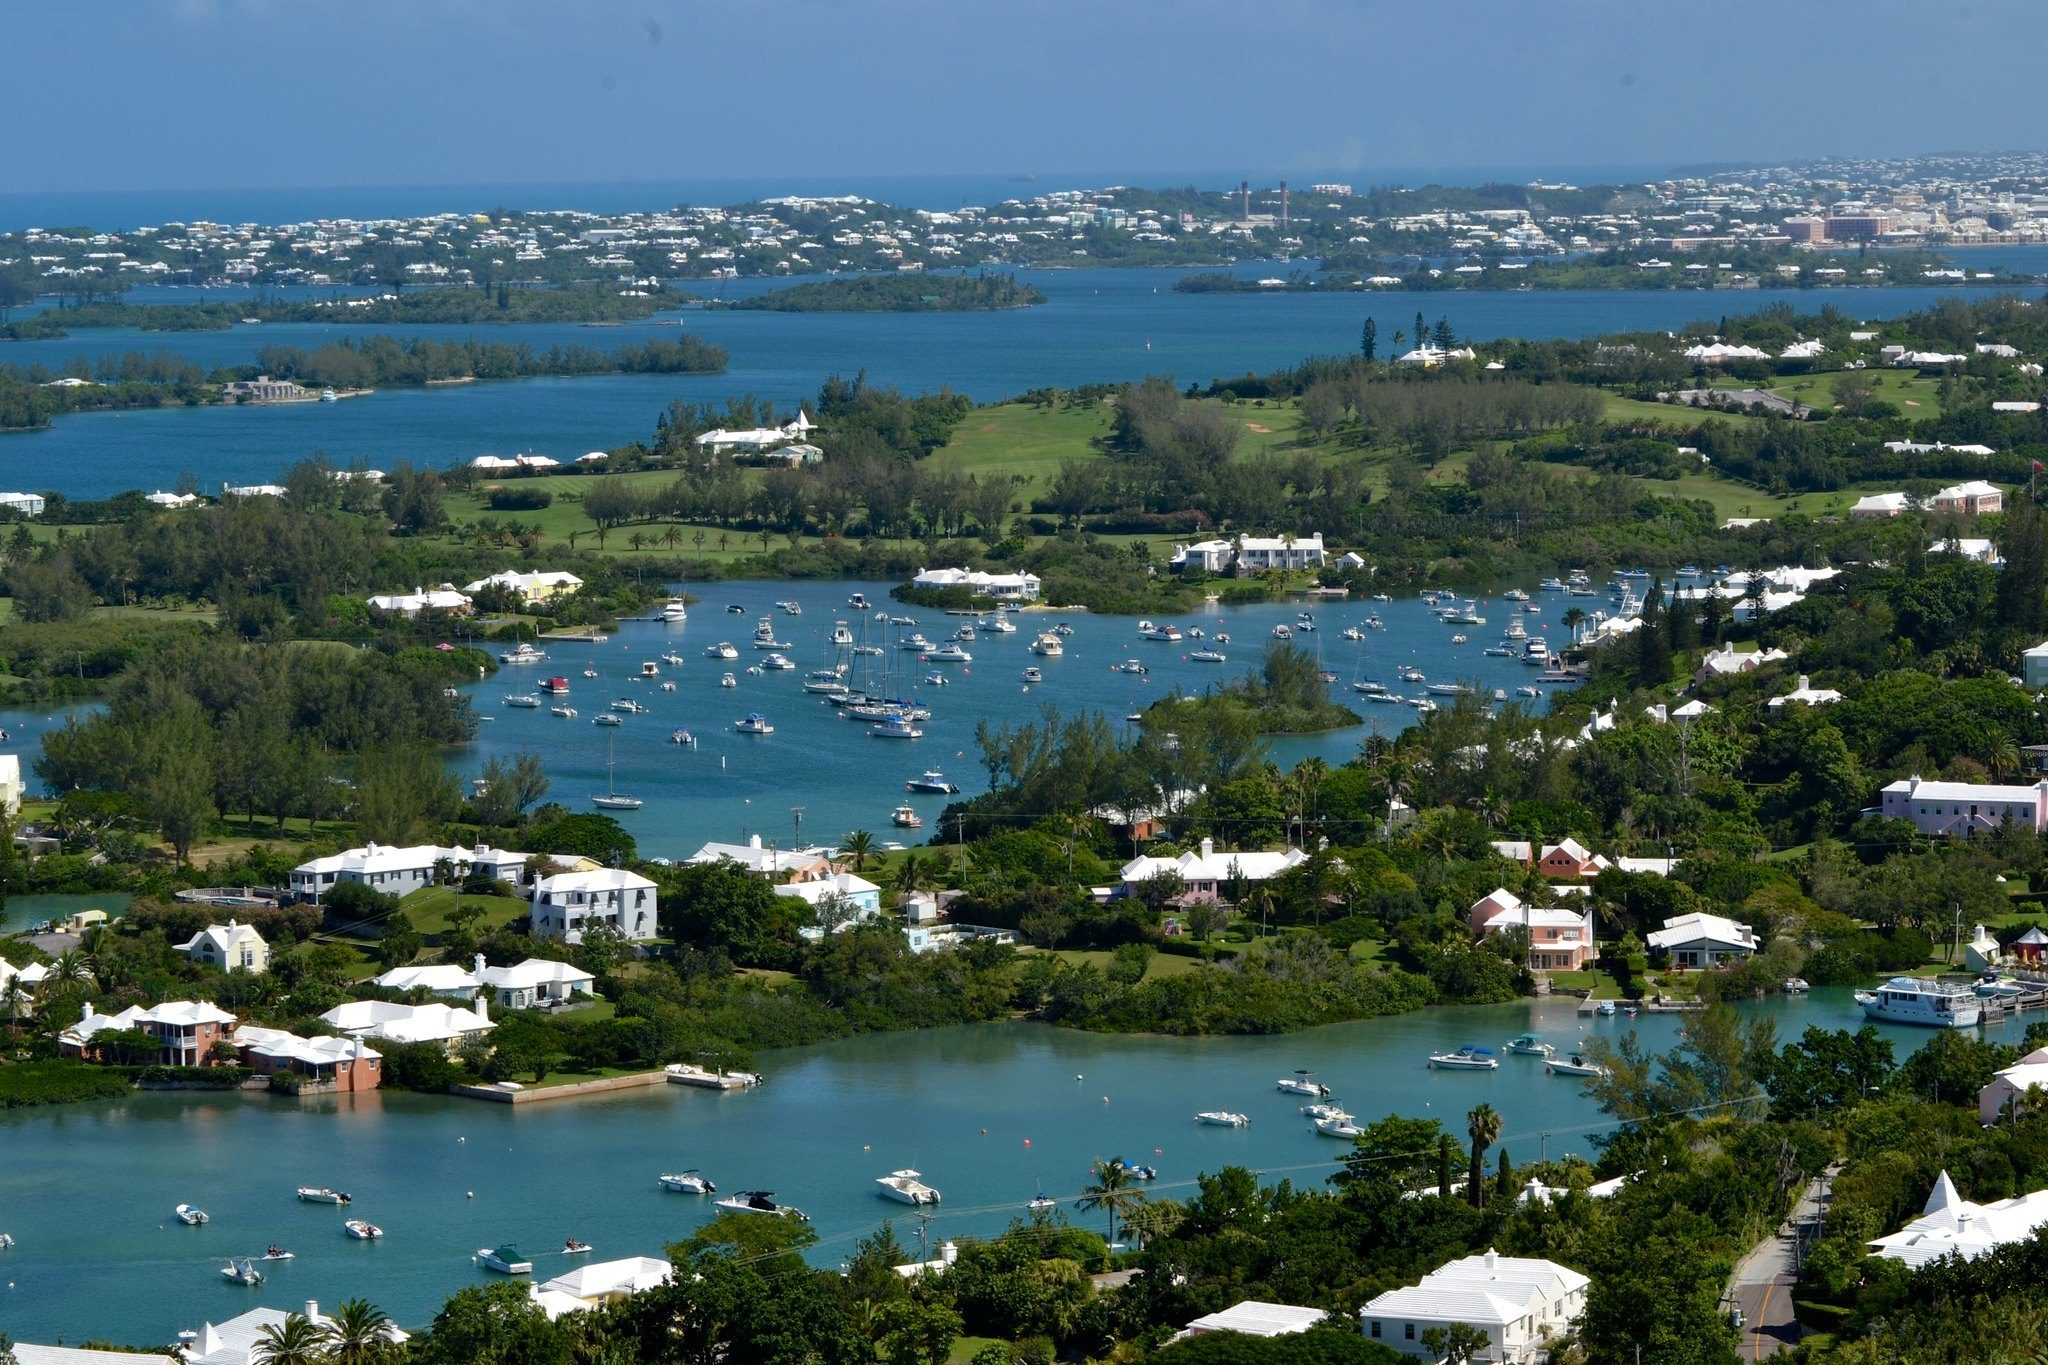 List of Best All Inclusive Resort and Hotel in Bermuda